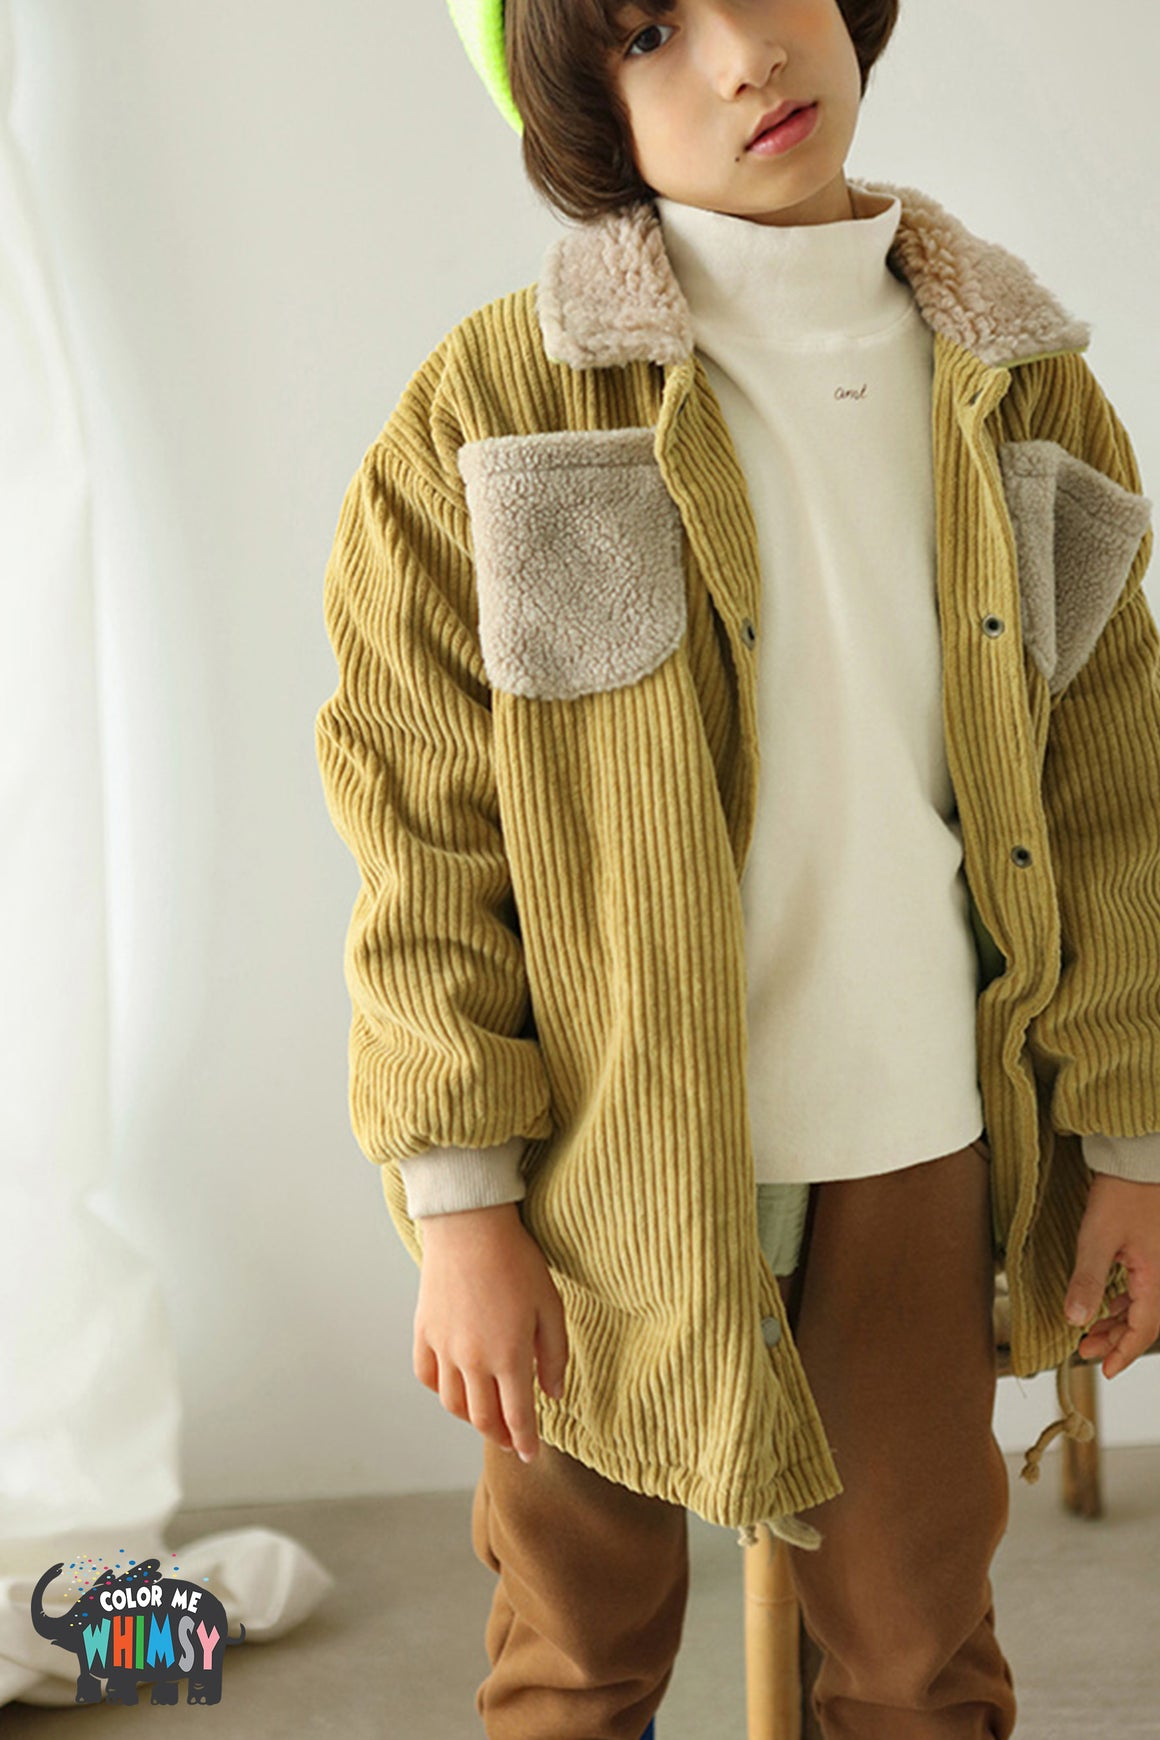 BN Corduroy Jacket at Color Me WHIMSY Hip Kid's Fashion Ethically Made in South Korea